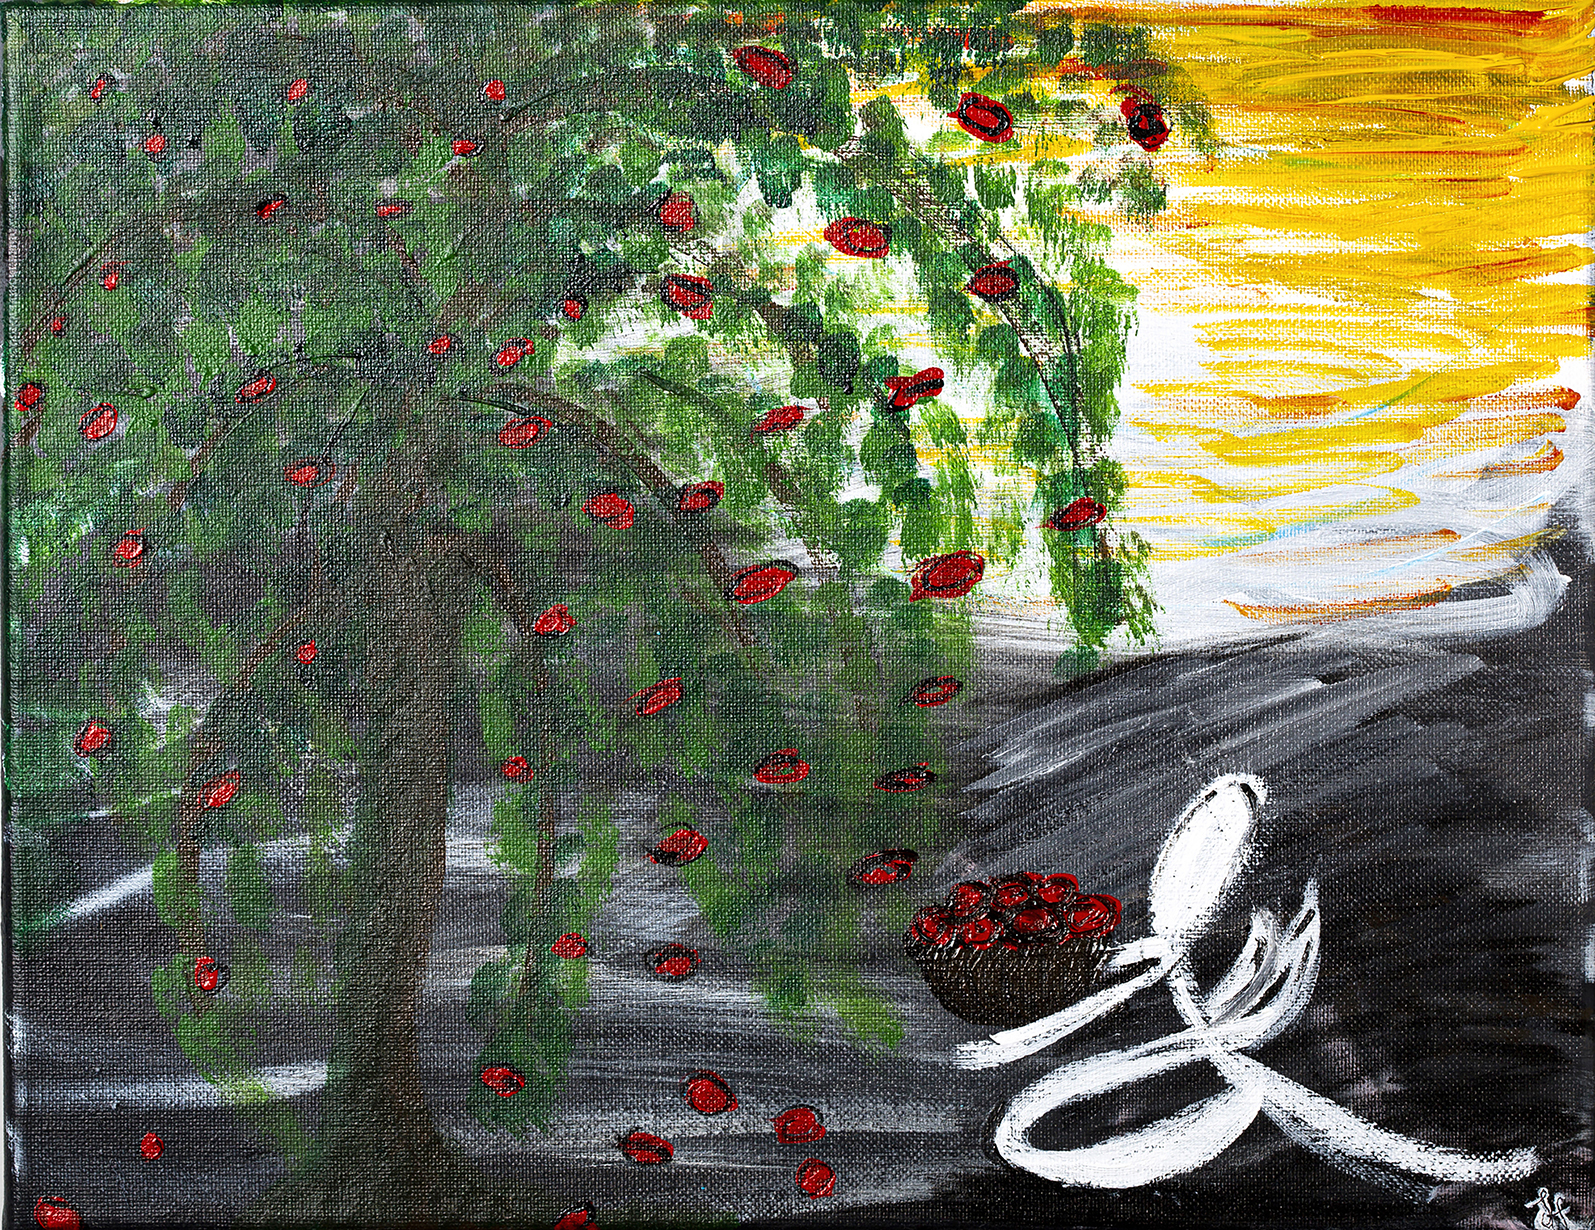 JACQUELINE HULSEY, THE ESSENTIAL TREE: In this piece I painted a tree which represents life, earing the Red cells mu mother so desperately needs. I drew her in an abstract angel form collecting any of the cells from this tree, to give her back life.